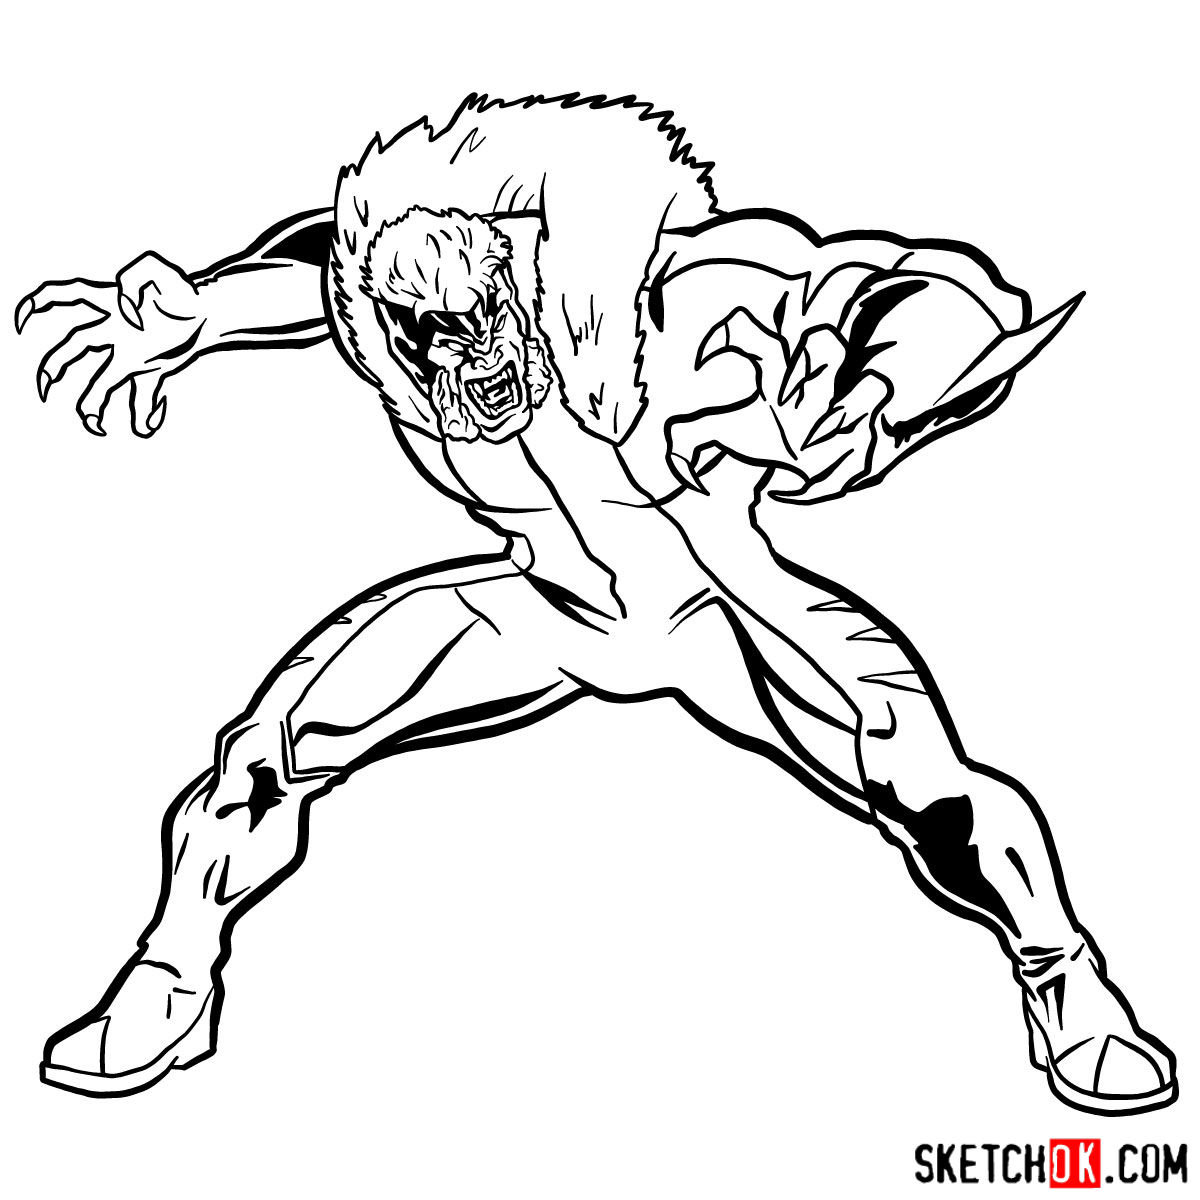 How to draw Sabretooth (X-Men mutant) - step 14